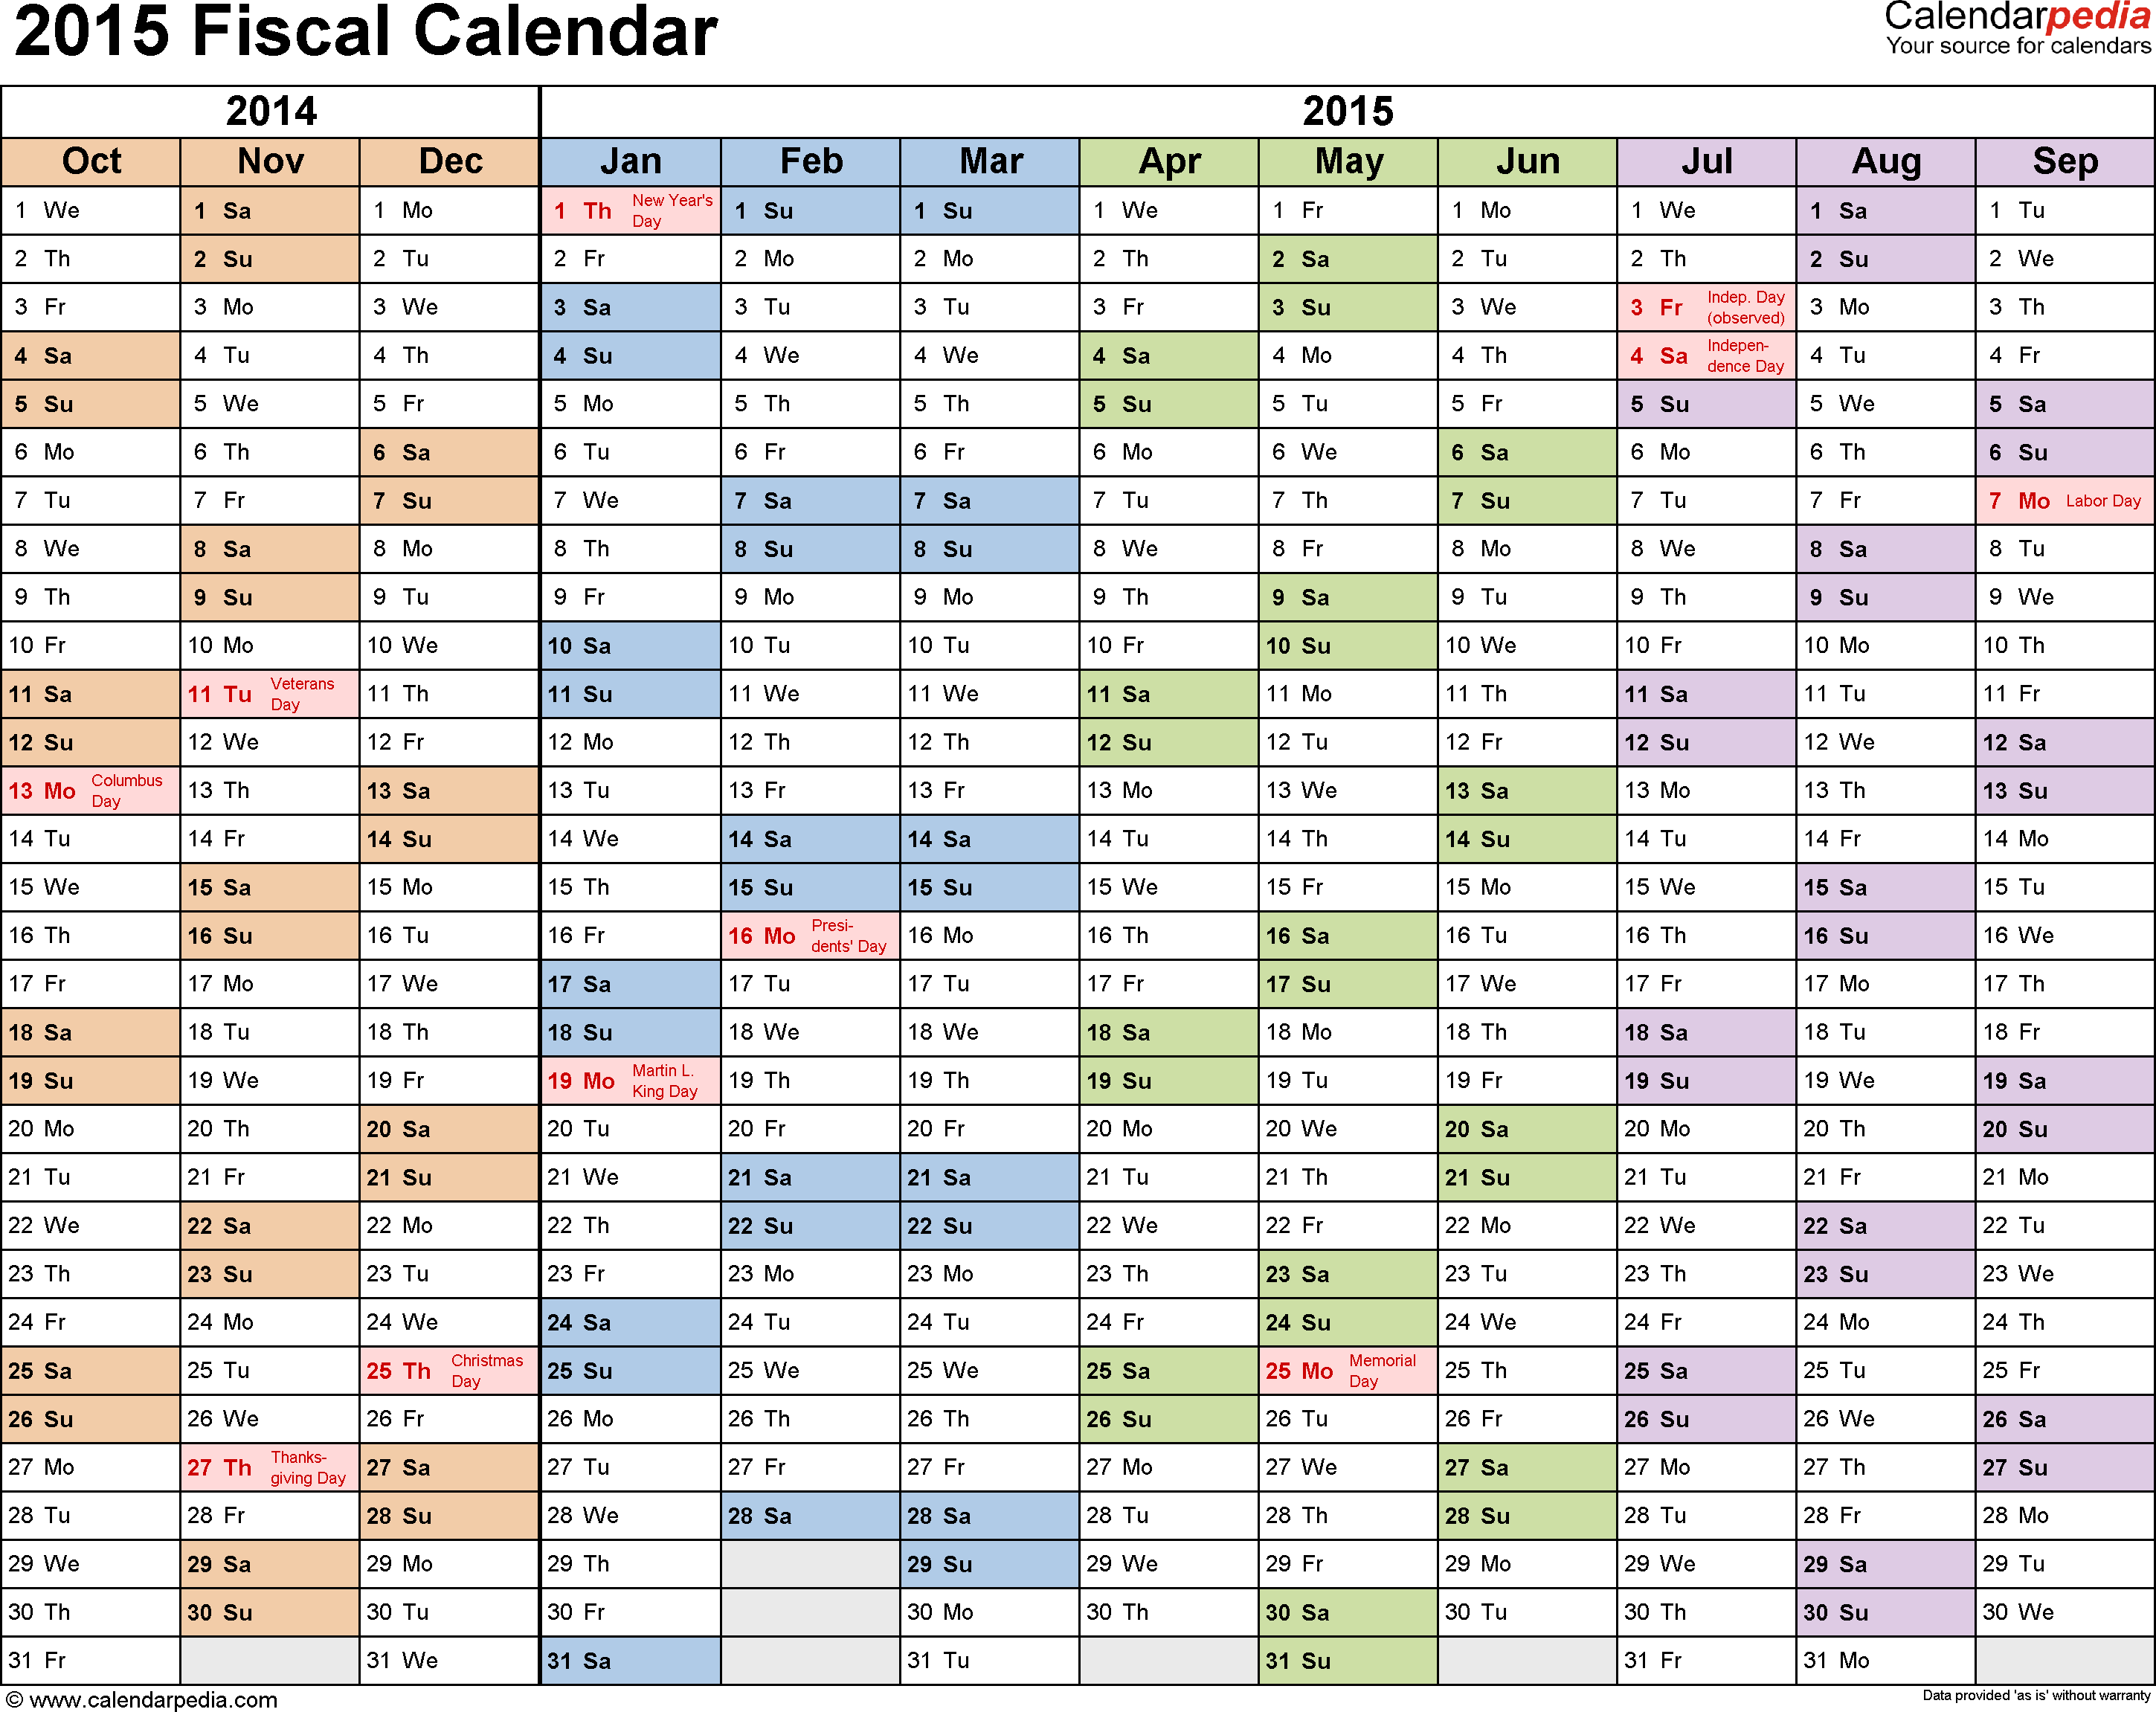 Template 1: Fiscal year calendar 2015 for PDF, landscape orientation, months horizontally, 1 page